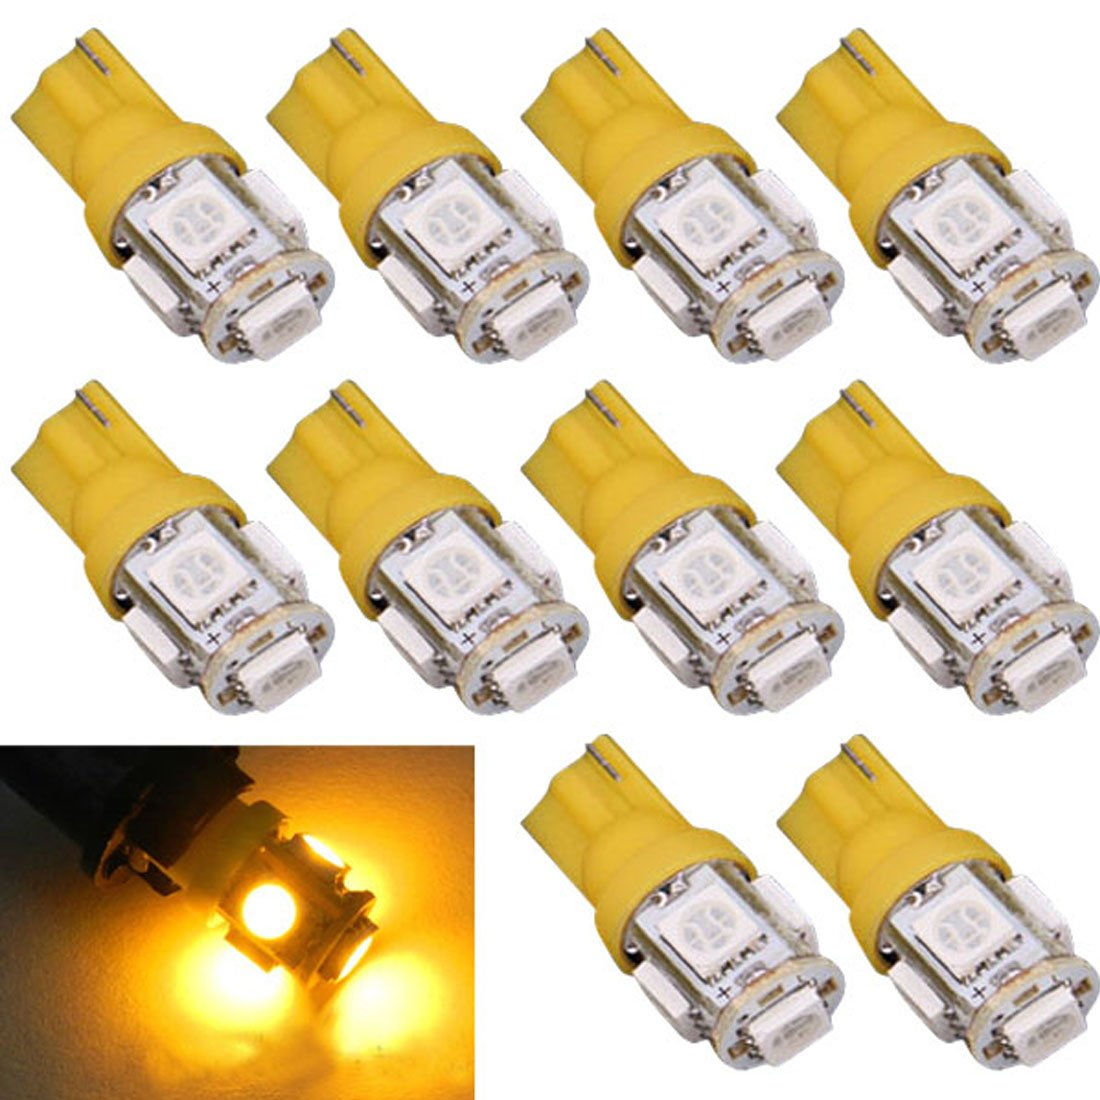 TONSEE 10pcs T10 5-SMD 5050 Xenon LED Light bulbs 192 168 194 W5W 2825 158, Yellow TONSEE_A10681